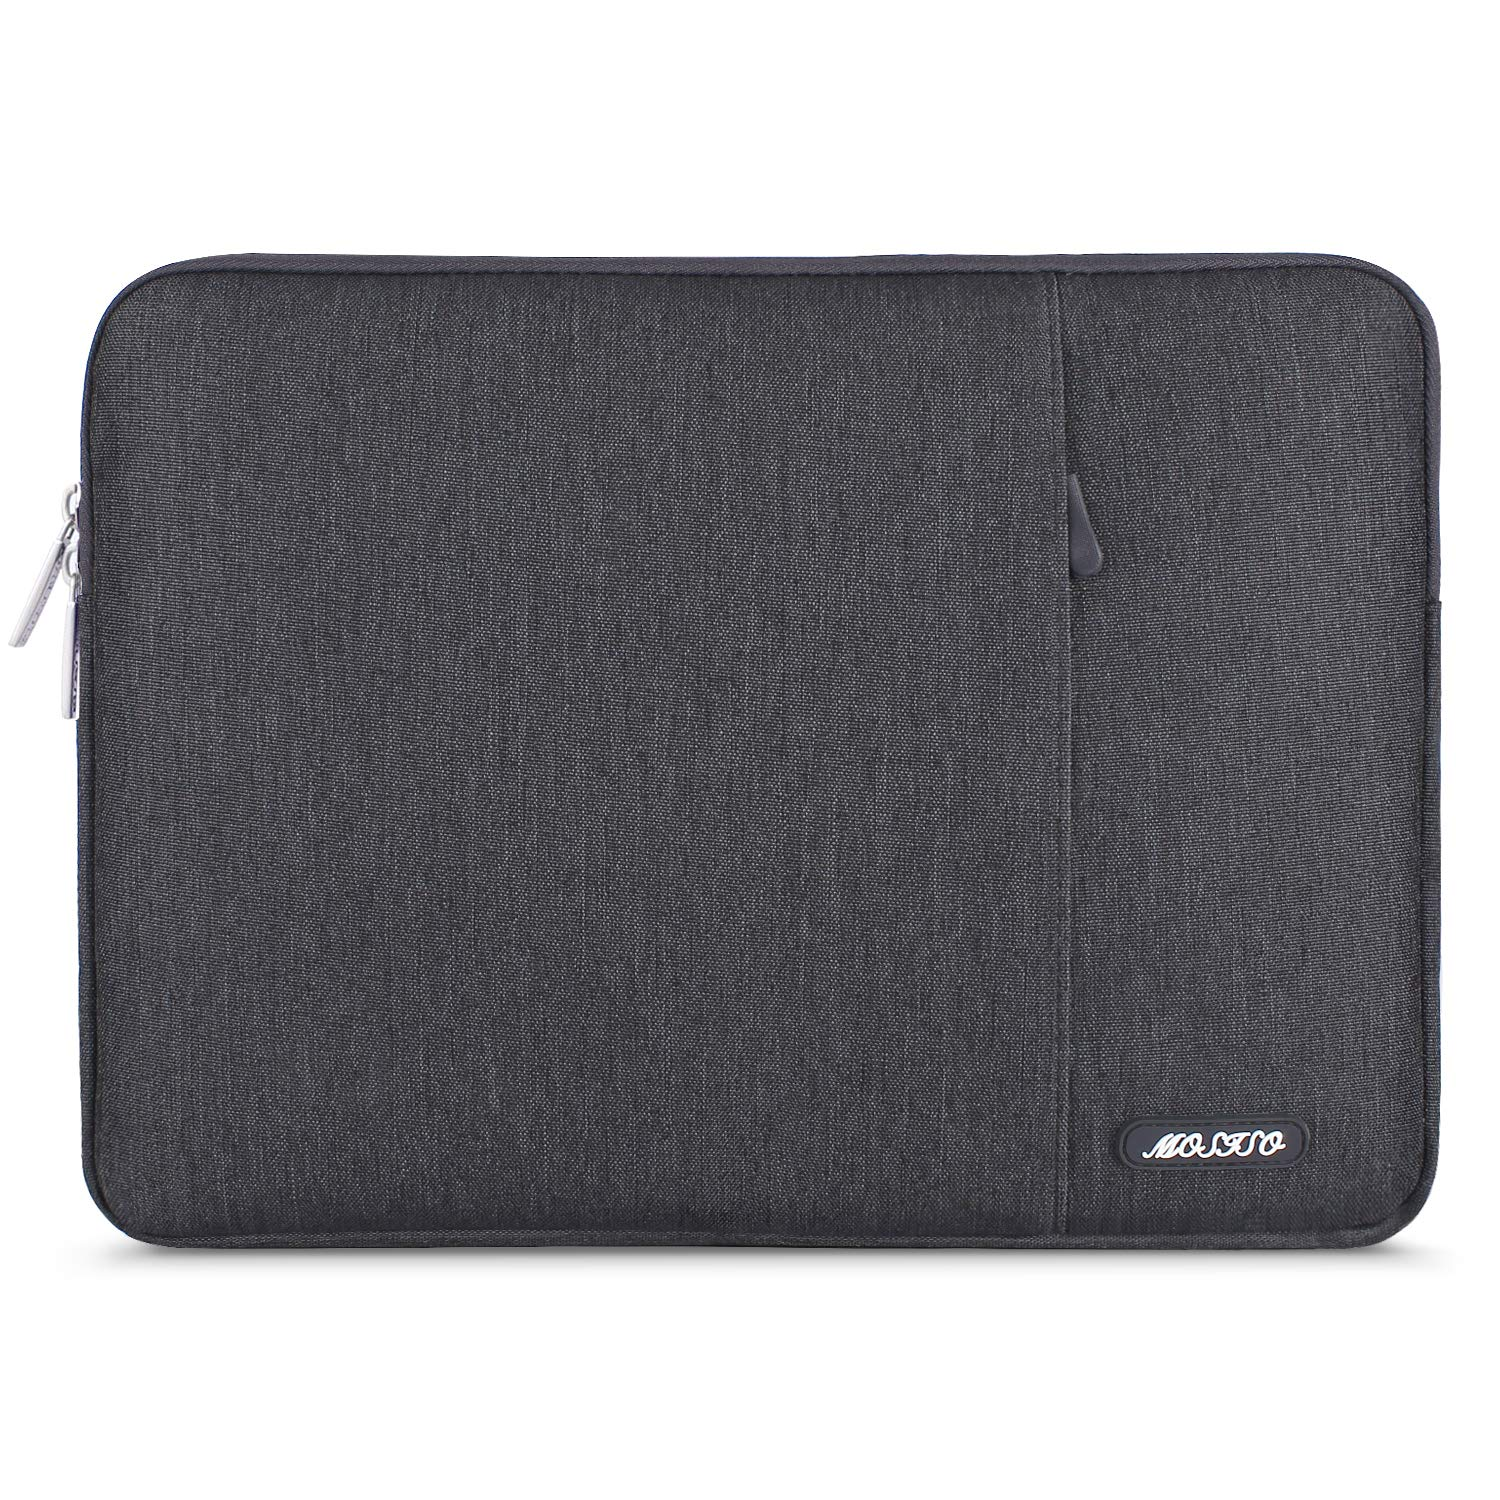 MOSISO Laptop Sleeve Bag Compatible with 13-13.3 inch MacBook Pro, MacBook Air, Notebook Computer, Vertical Style Water Repellent Polyester Protective Case Cover with Pocket, Space Gray